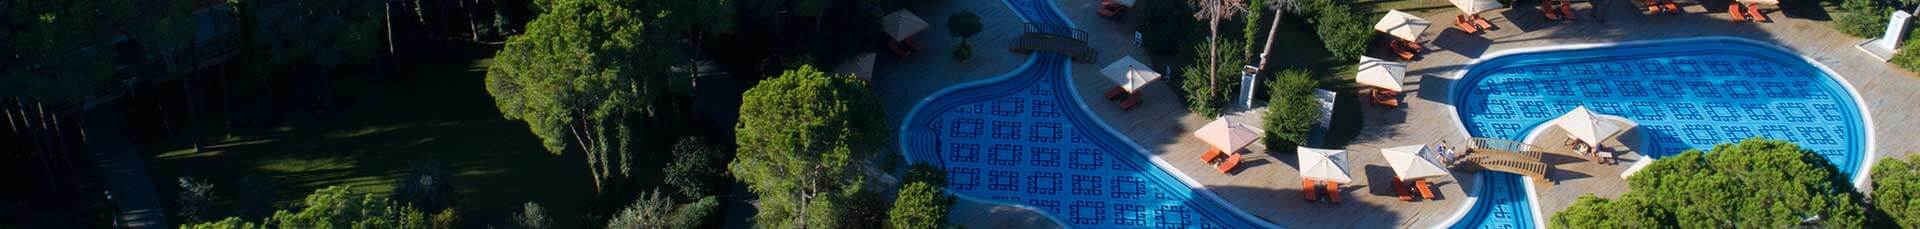 Ali Bey Resort Sorgun - Havuzlar